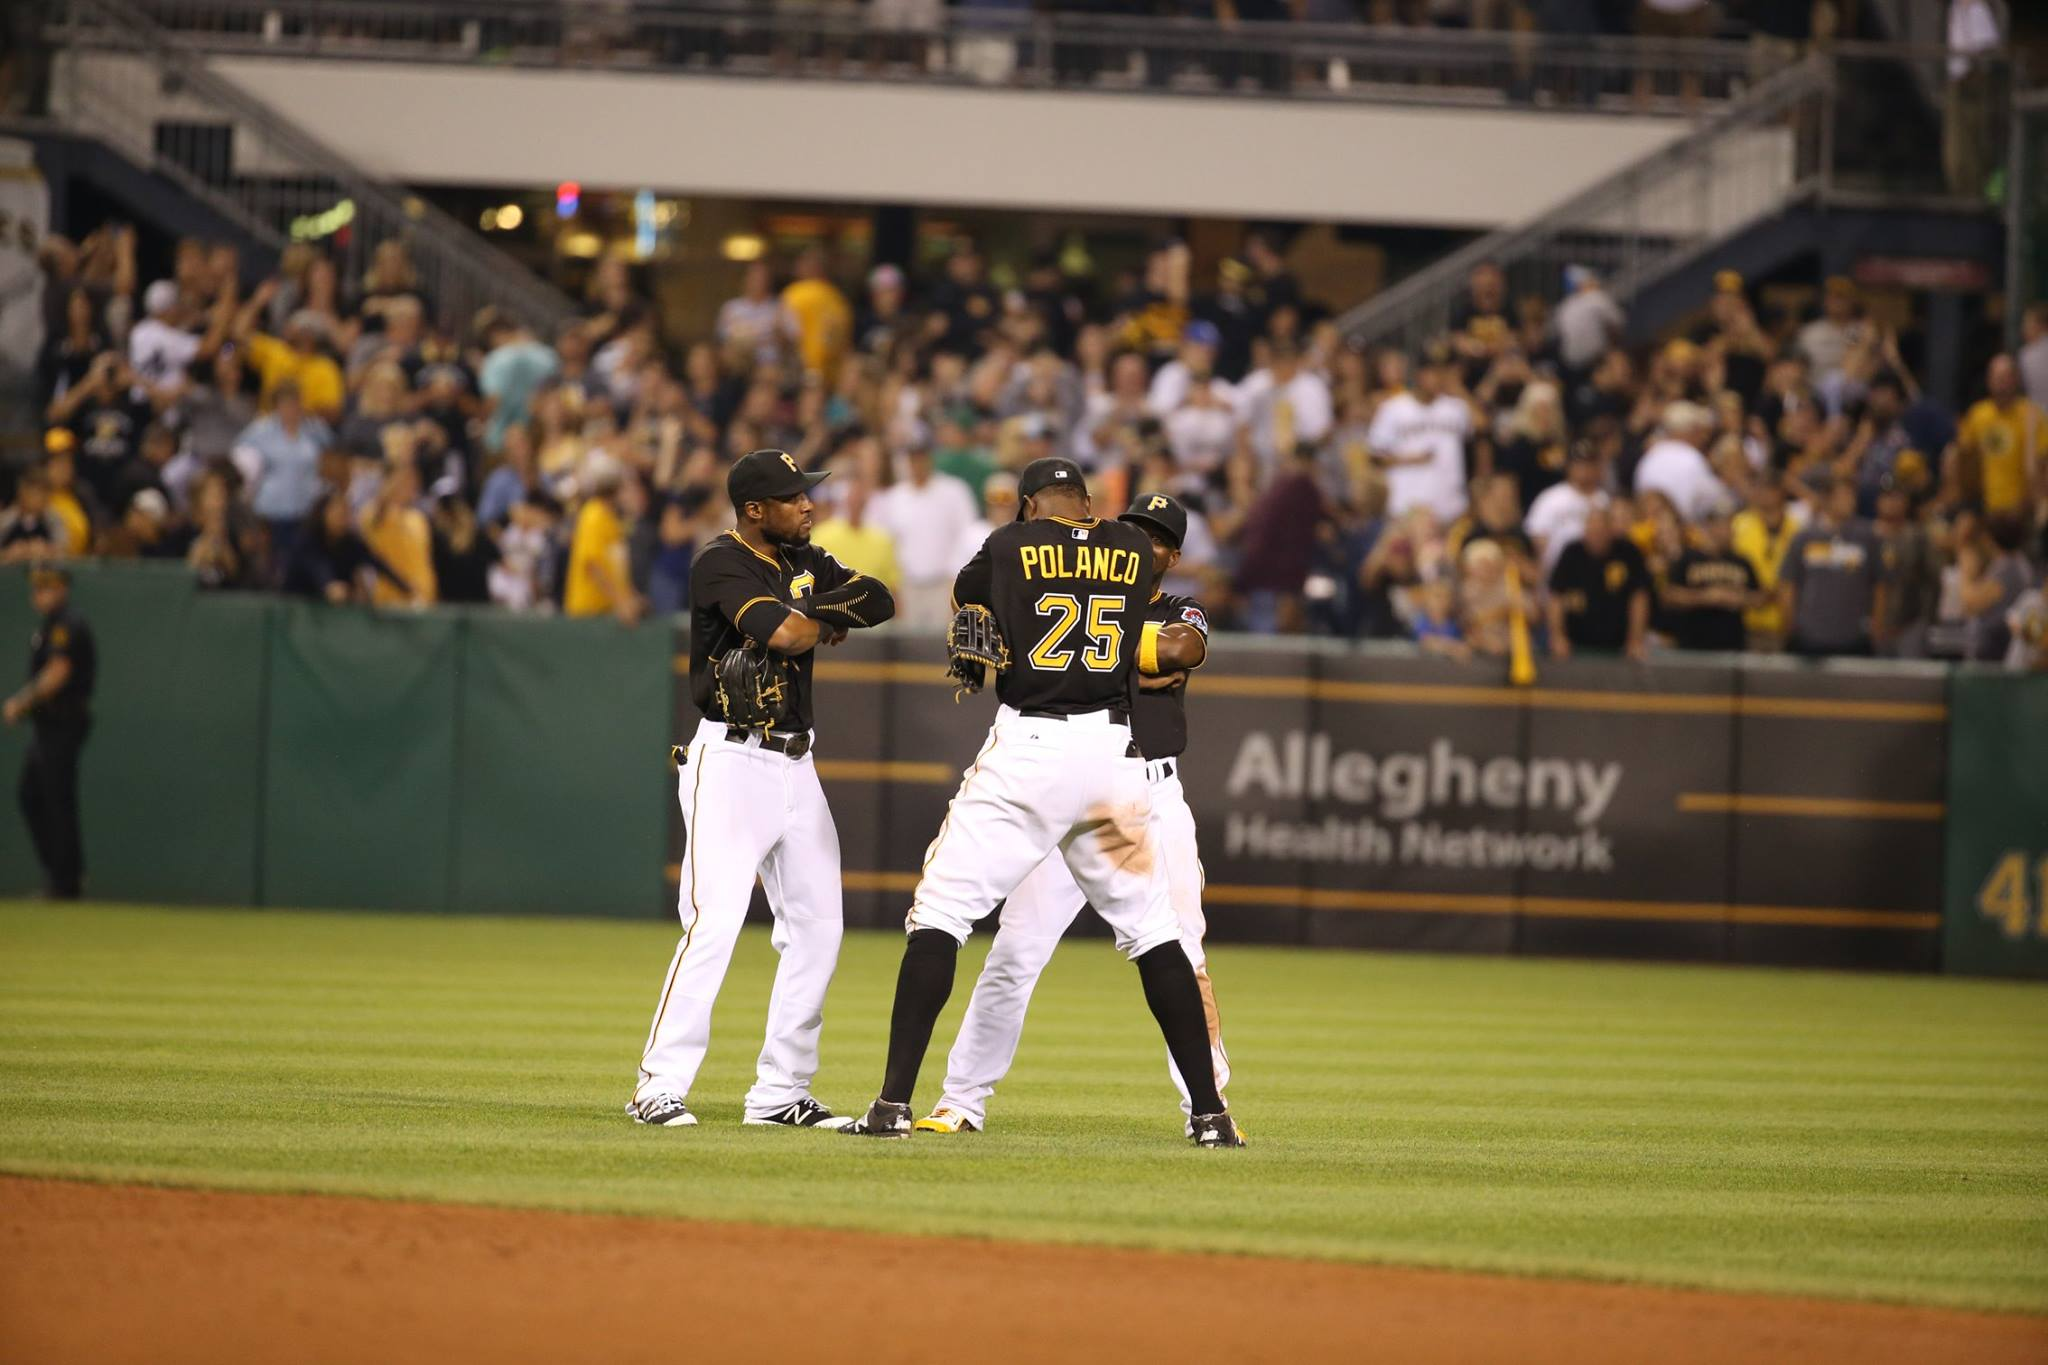 Polanco Powers Pirates Past Pesky Rockies